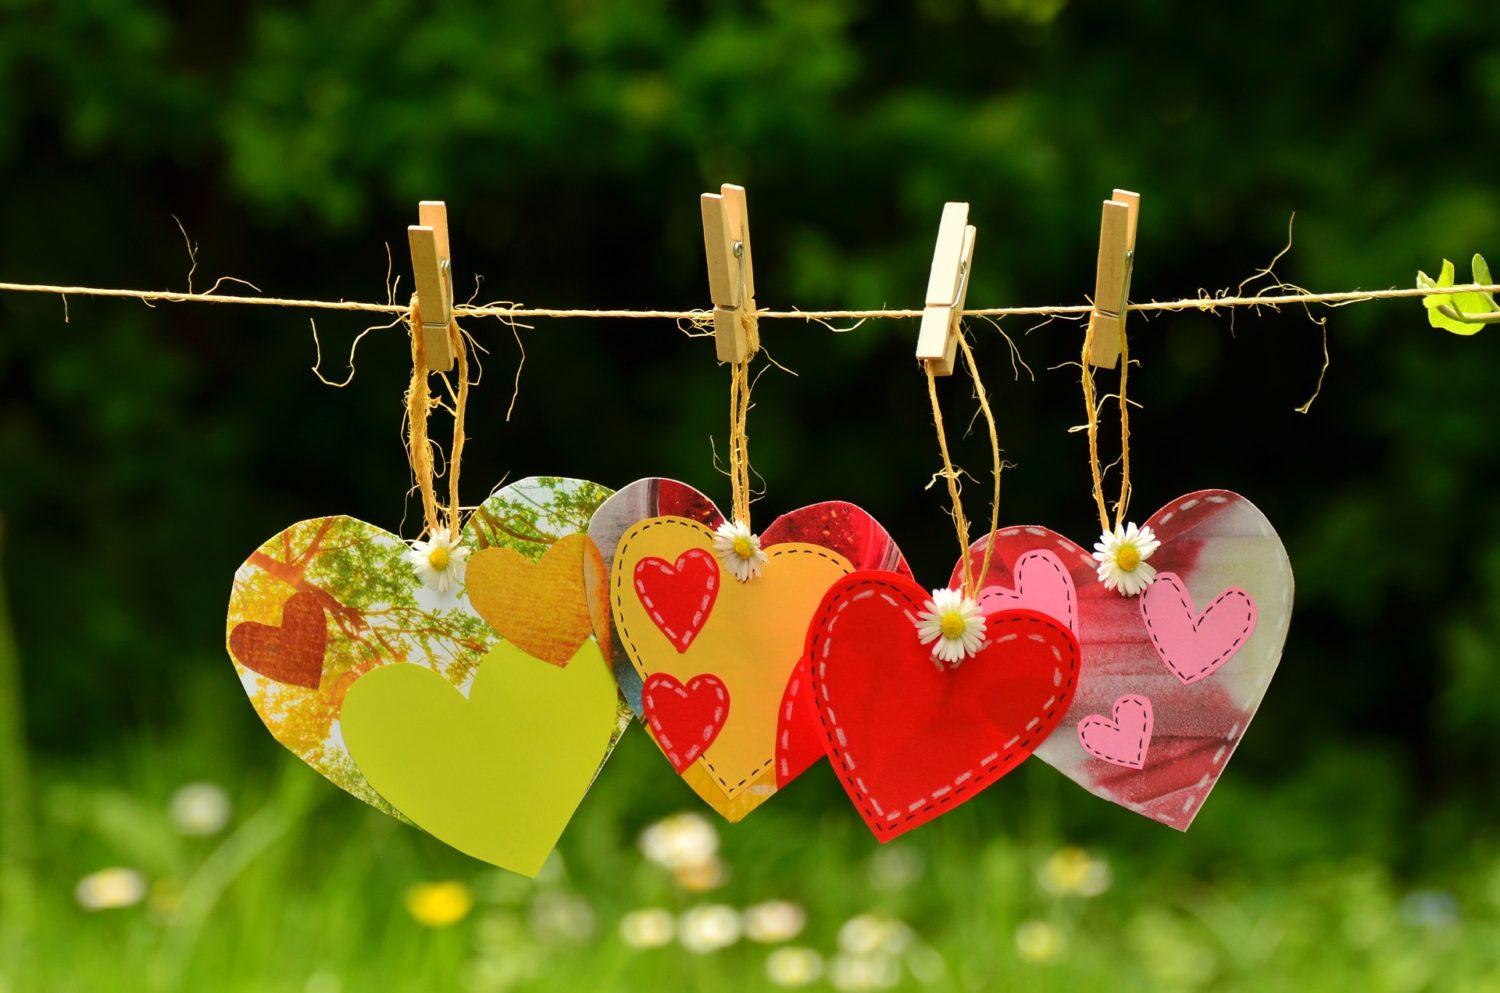 colorful paper hearts, red, yellow, pink, hanging from a clothesline by clothes pins, with a green bush and floral background